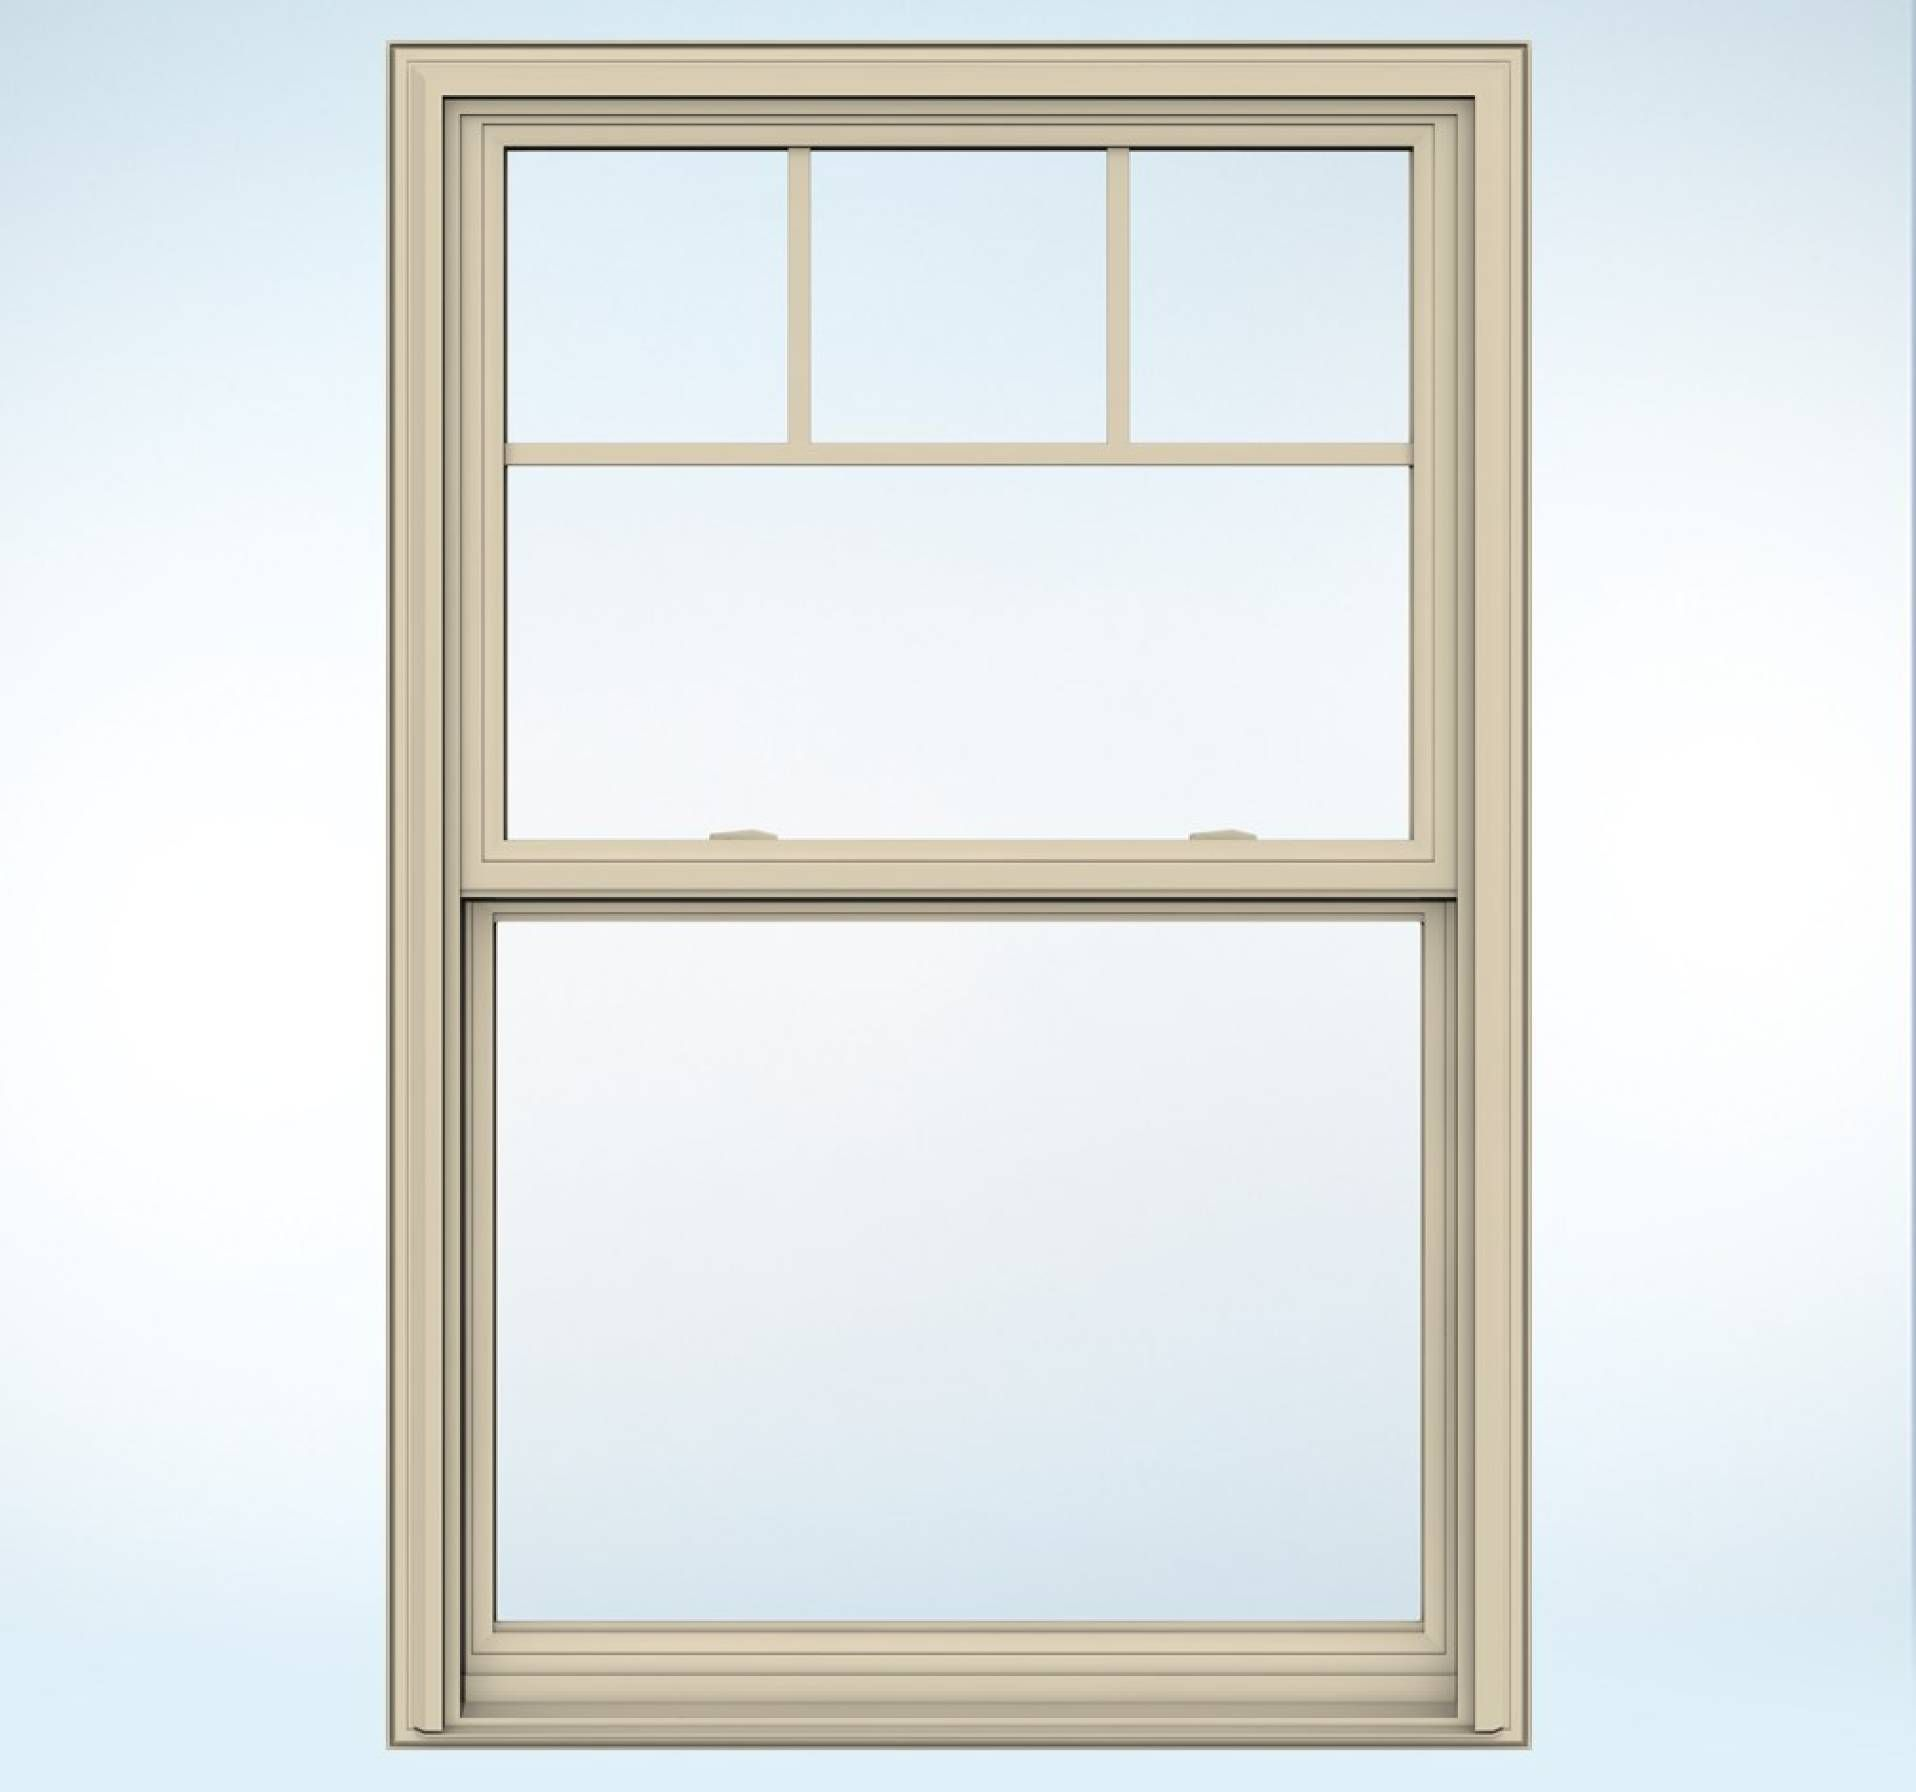 Vinyl window casing - Almond Trimmed Window With Craftsman Details Builders Vinyl V 2500 Jeld